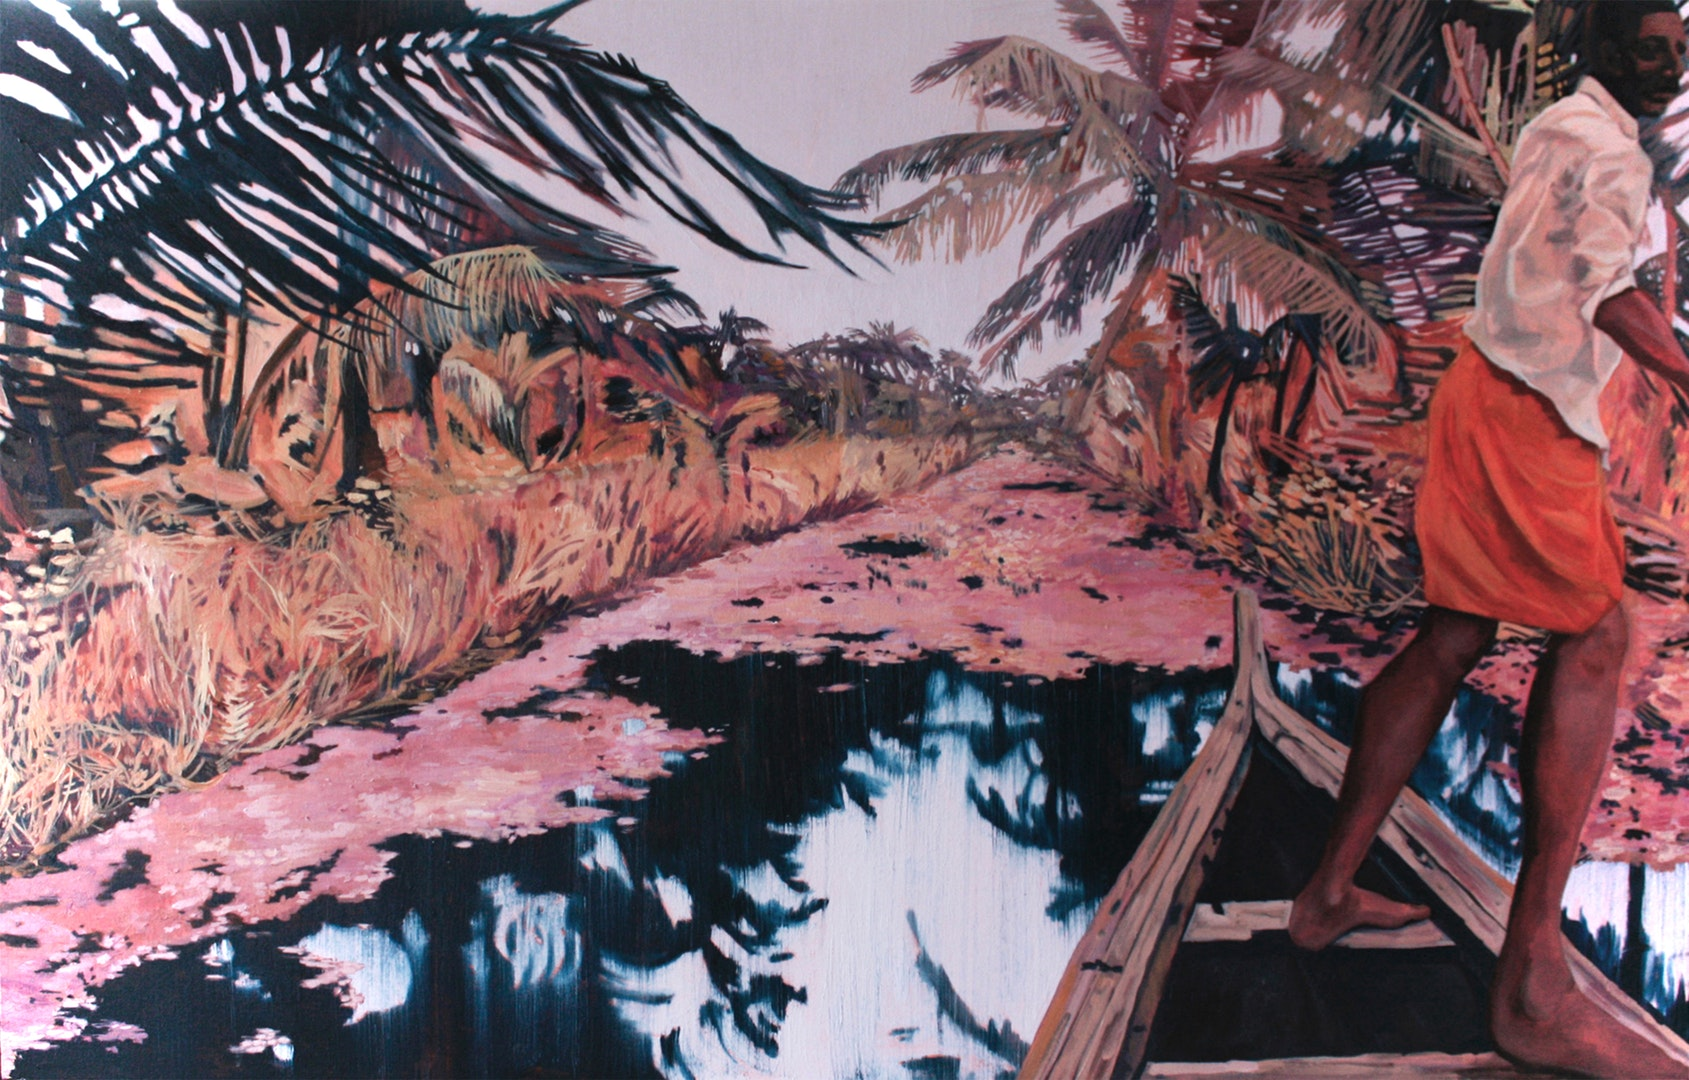 'Backwater Dream', Claire Cansick, Oil on canvas, 76 x 123 x 4 cm